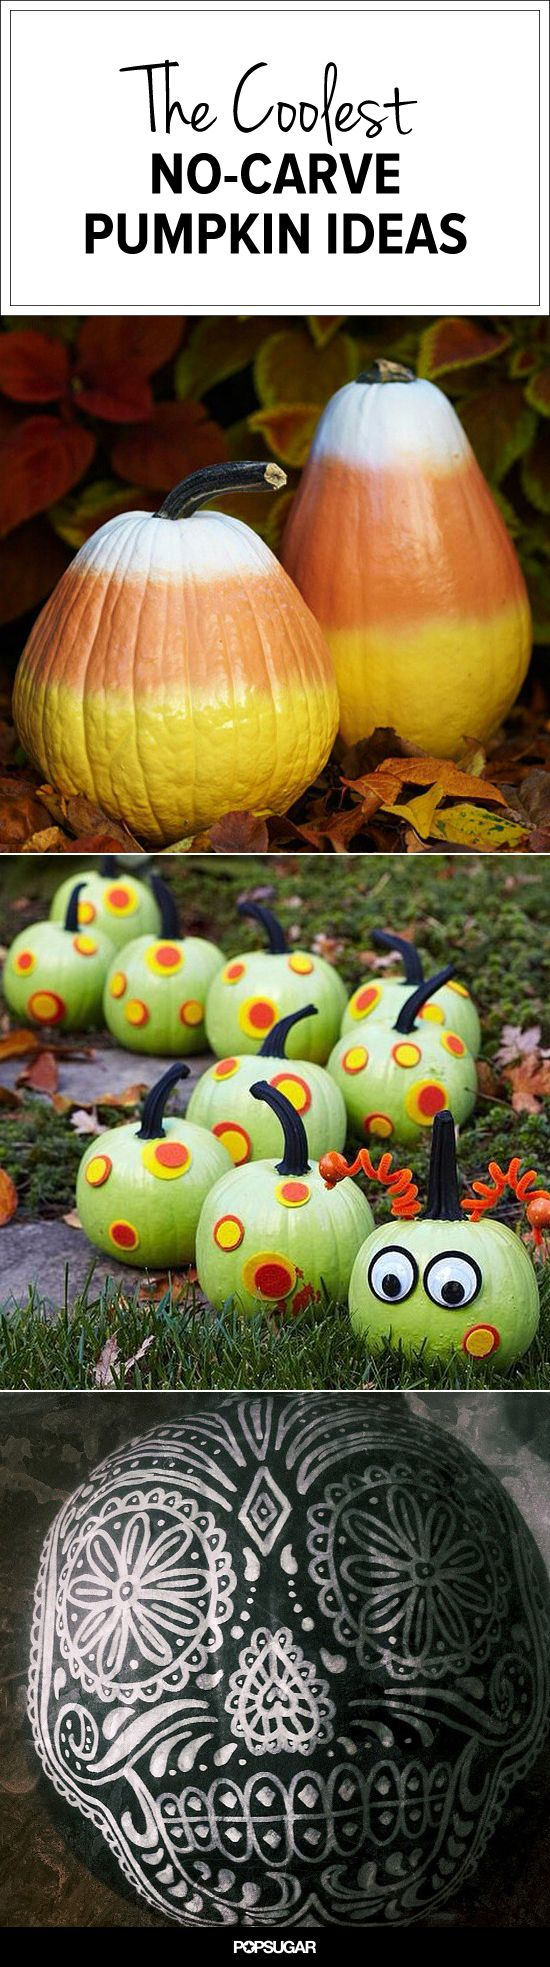 And fashion magic halloween pumpkins carving and decorating ideas - 20 No Carve Pumpkin Ideas Perfect For Kids